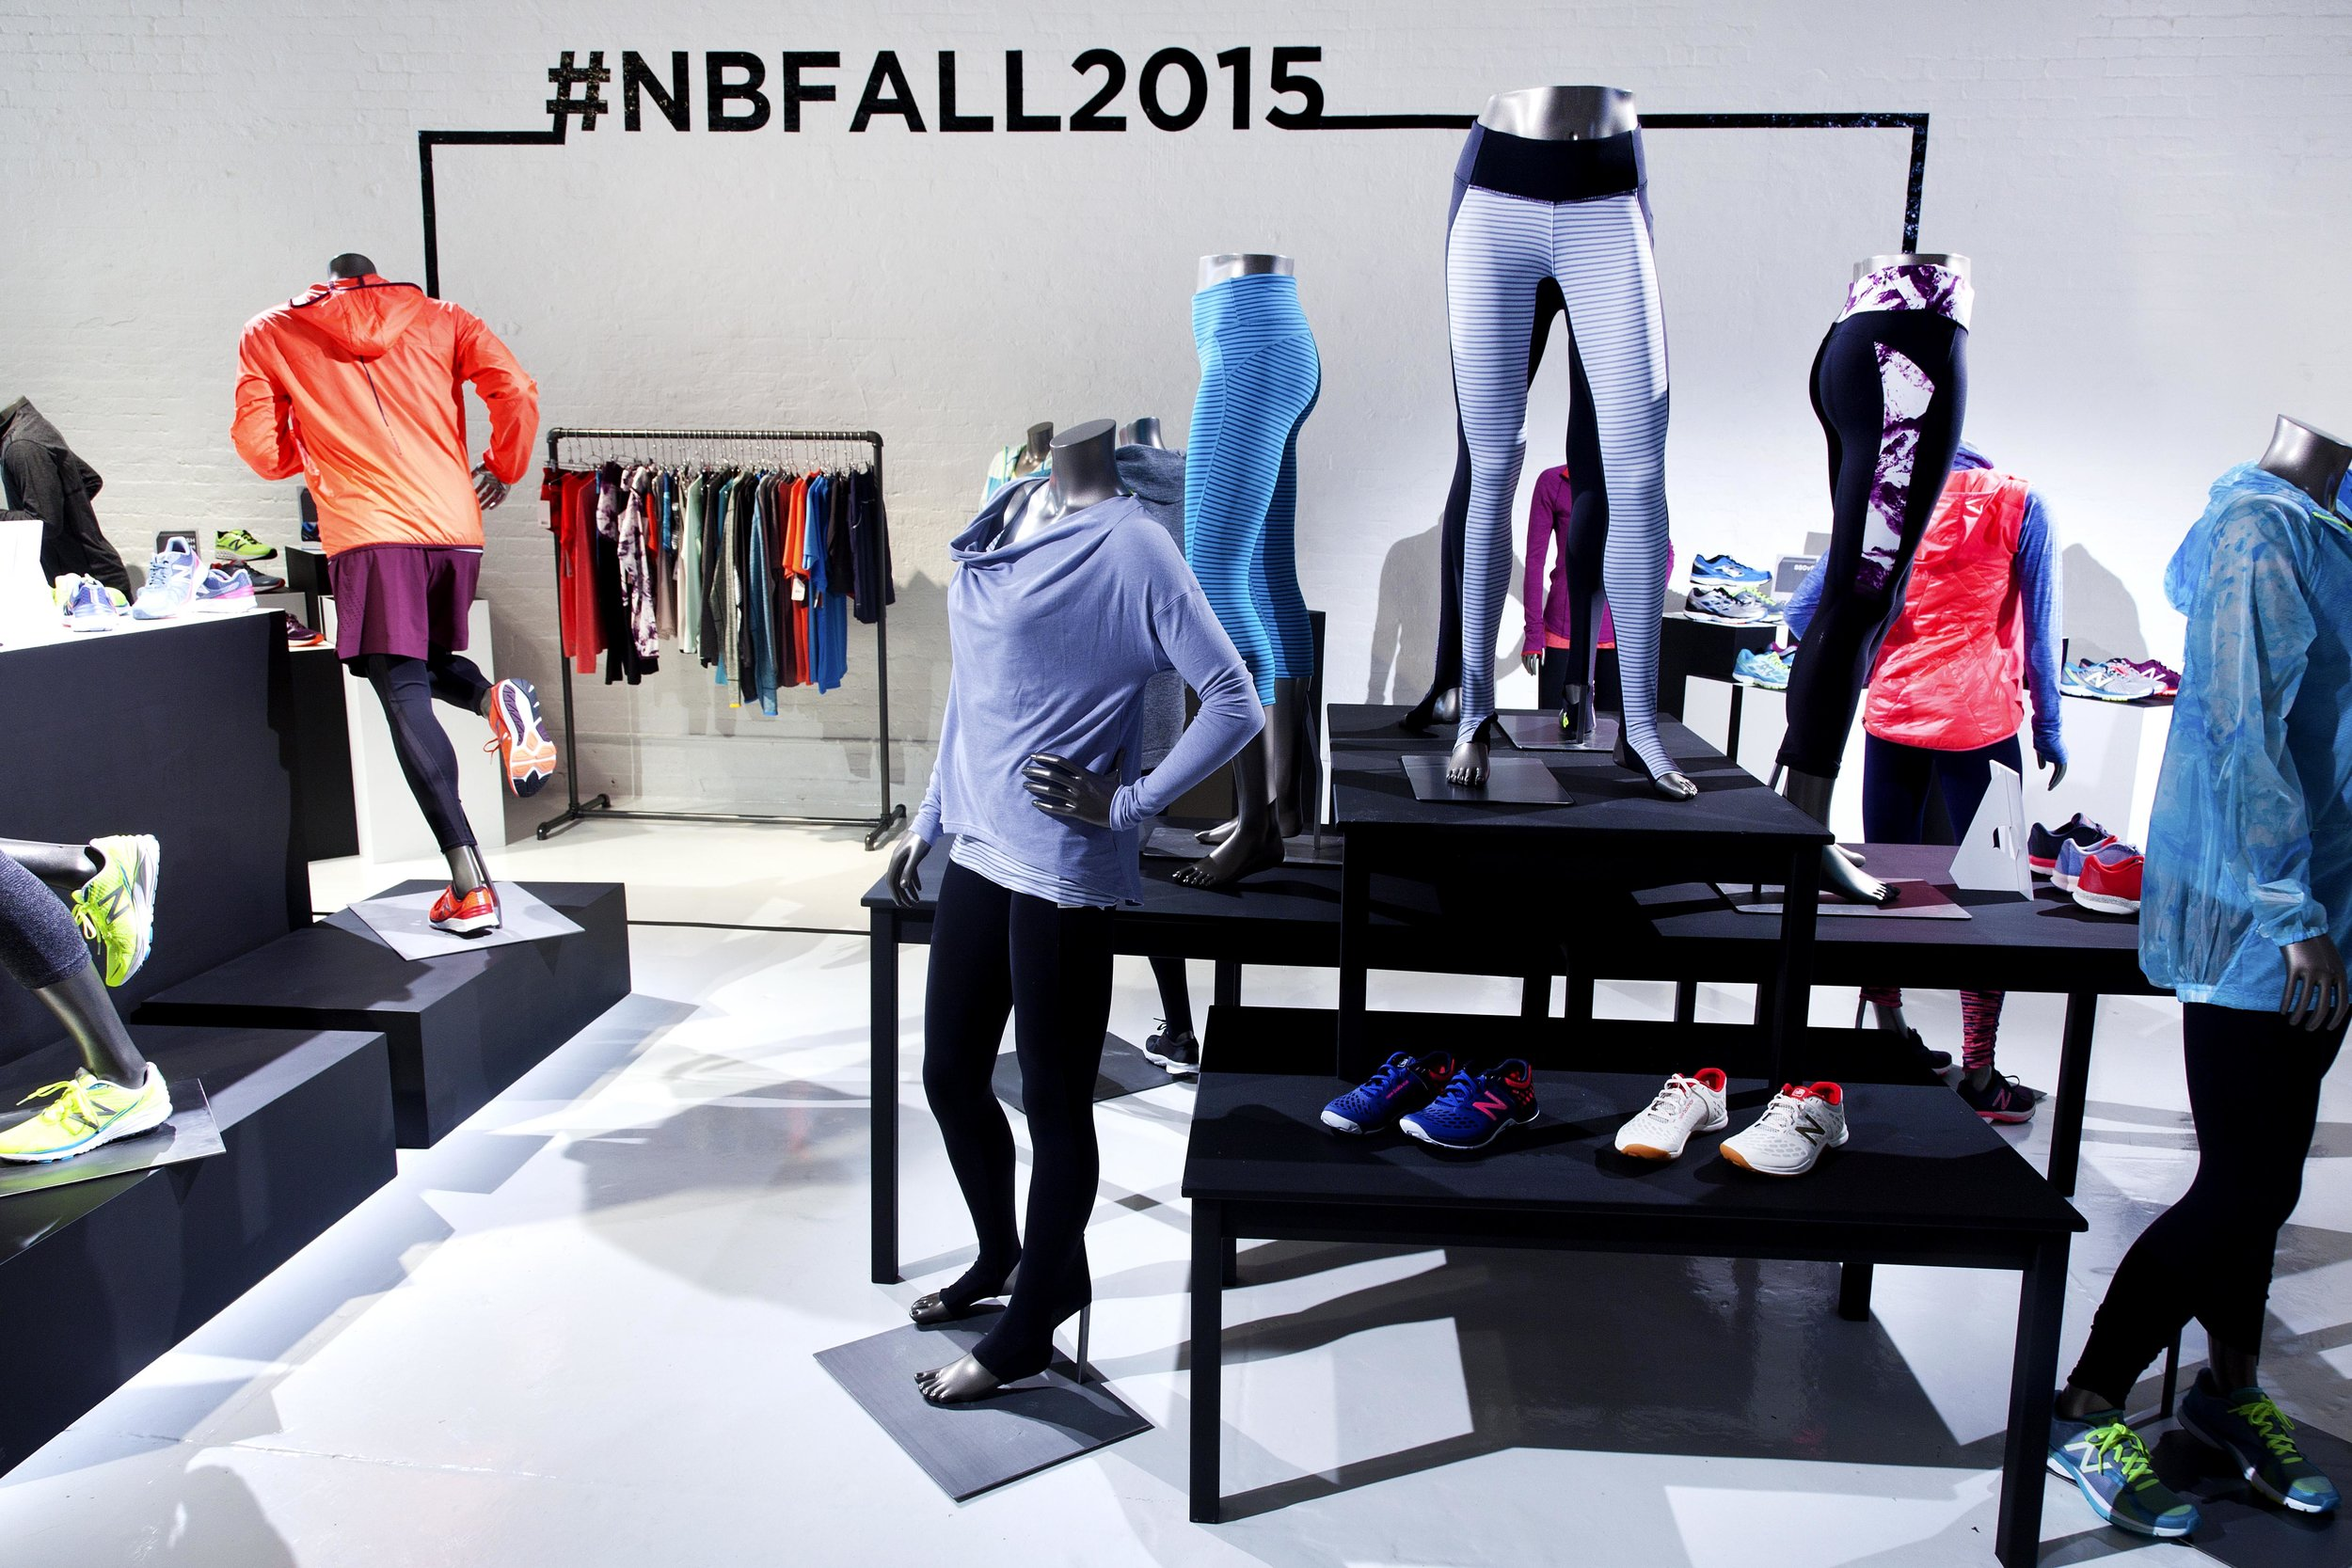 New Balance Fall Product Line Display